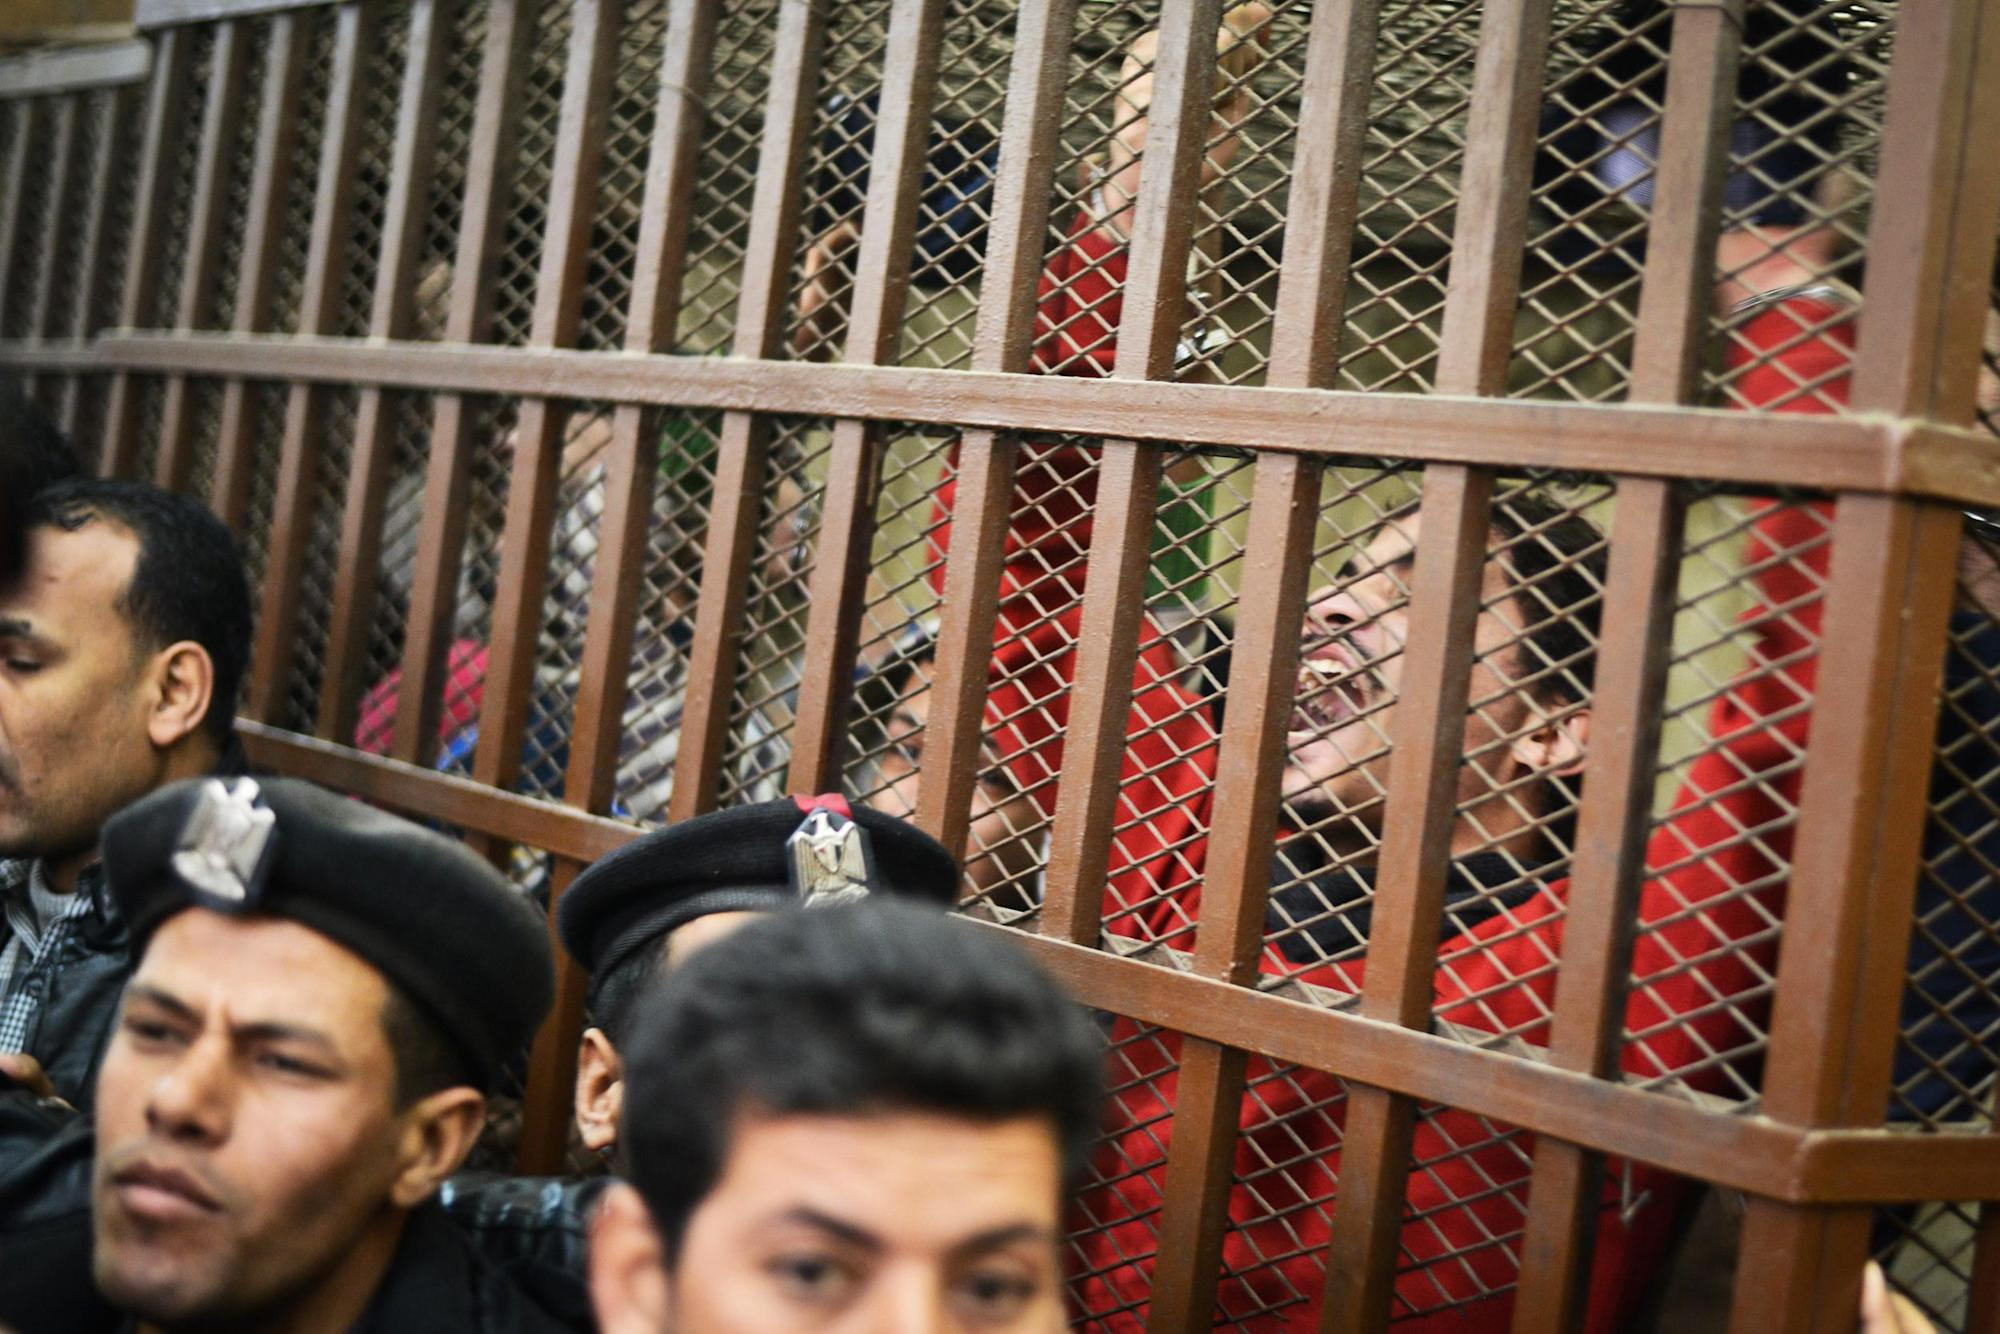 Egyptian officials systemically abuse, torture gays, rights group says